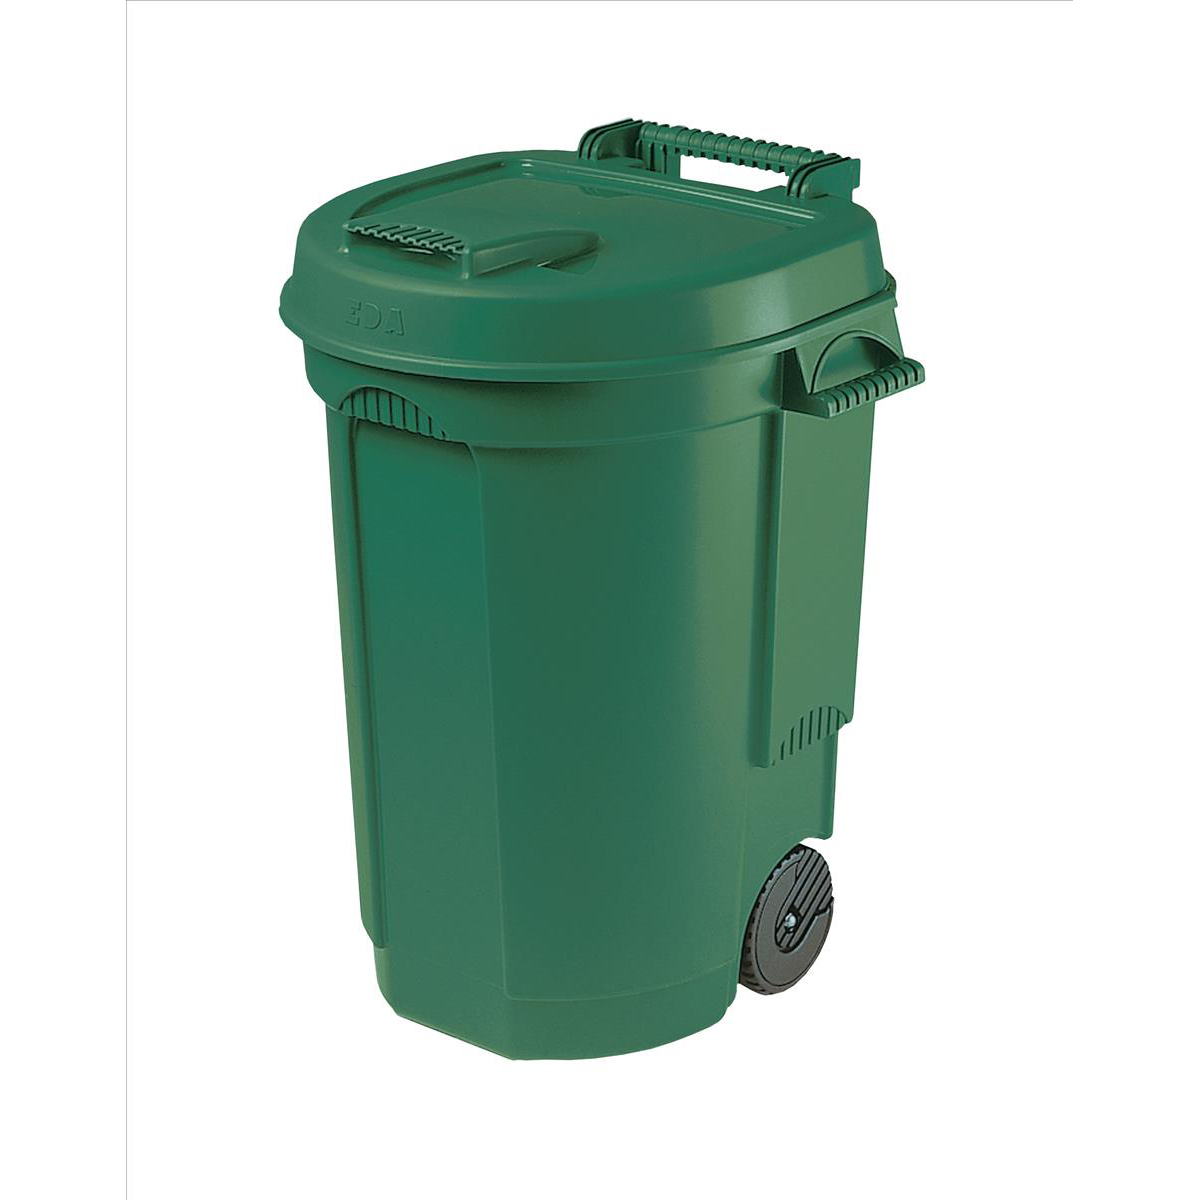 Rubbish Bins Dustbin with Wheels 110 Litres